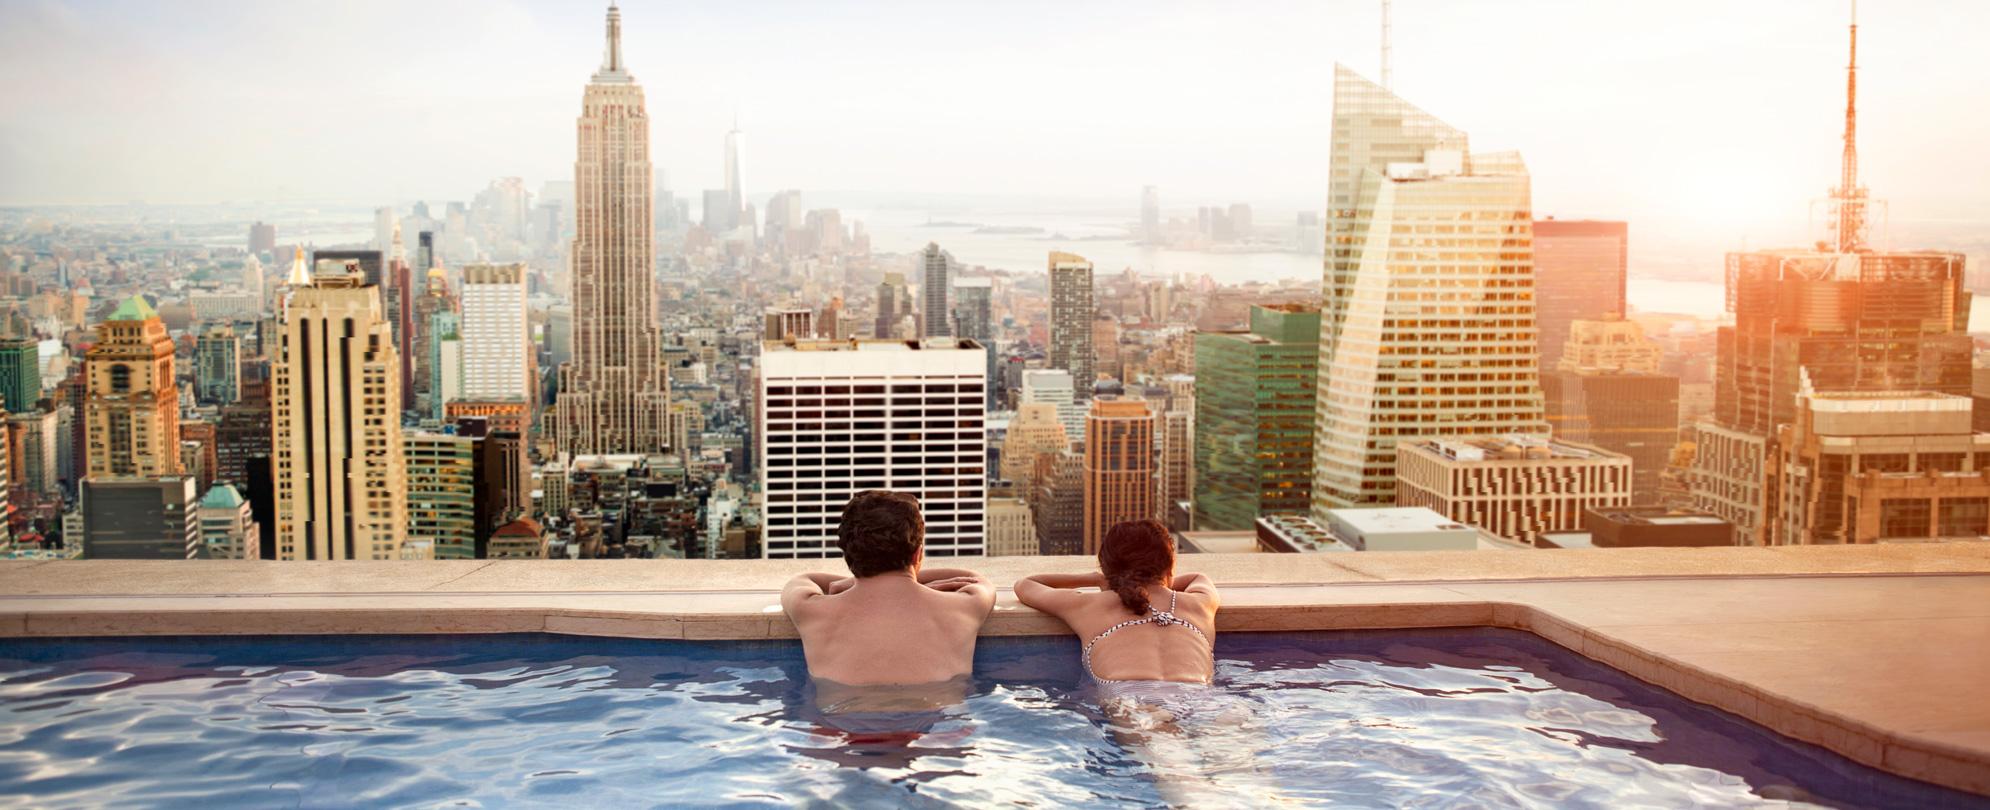 Couple leaning on the edge of an infinity pool overlooking city views